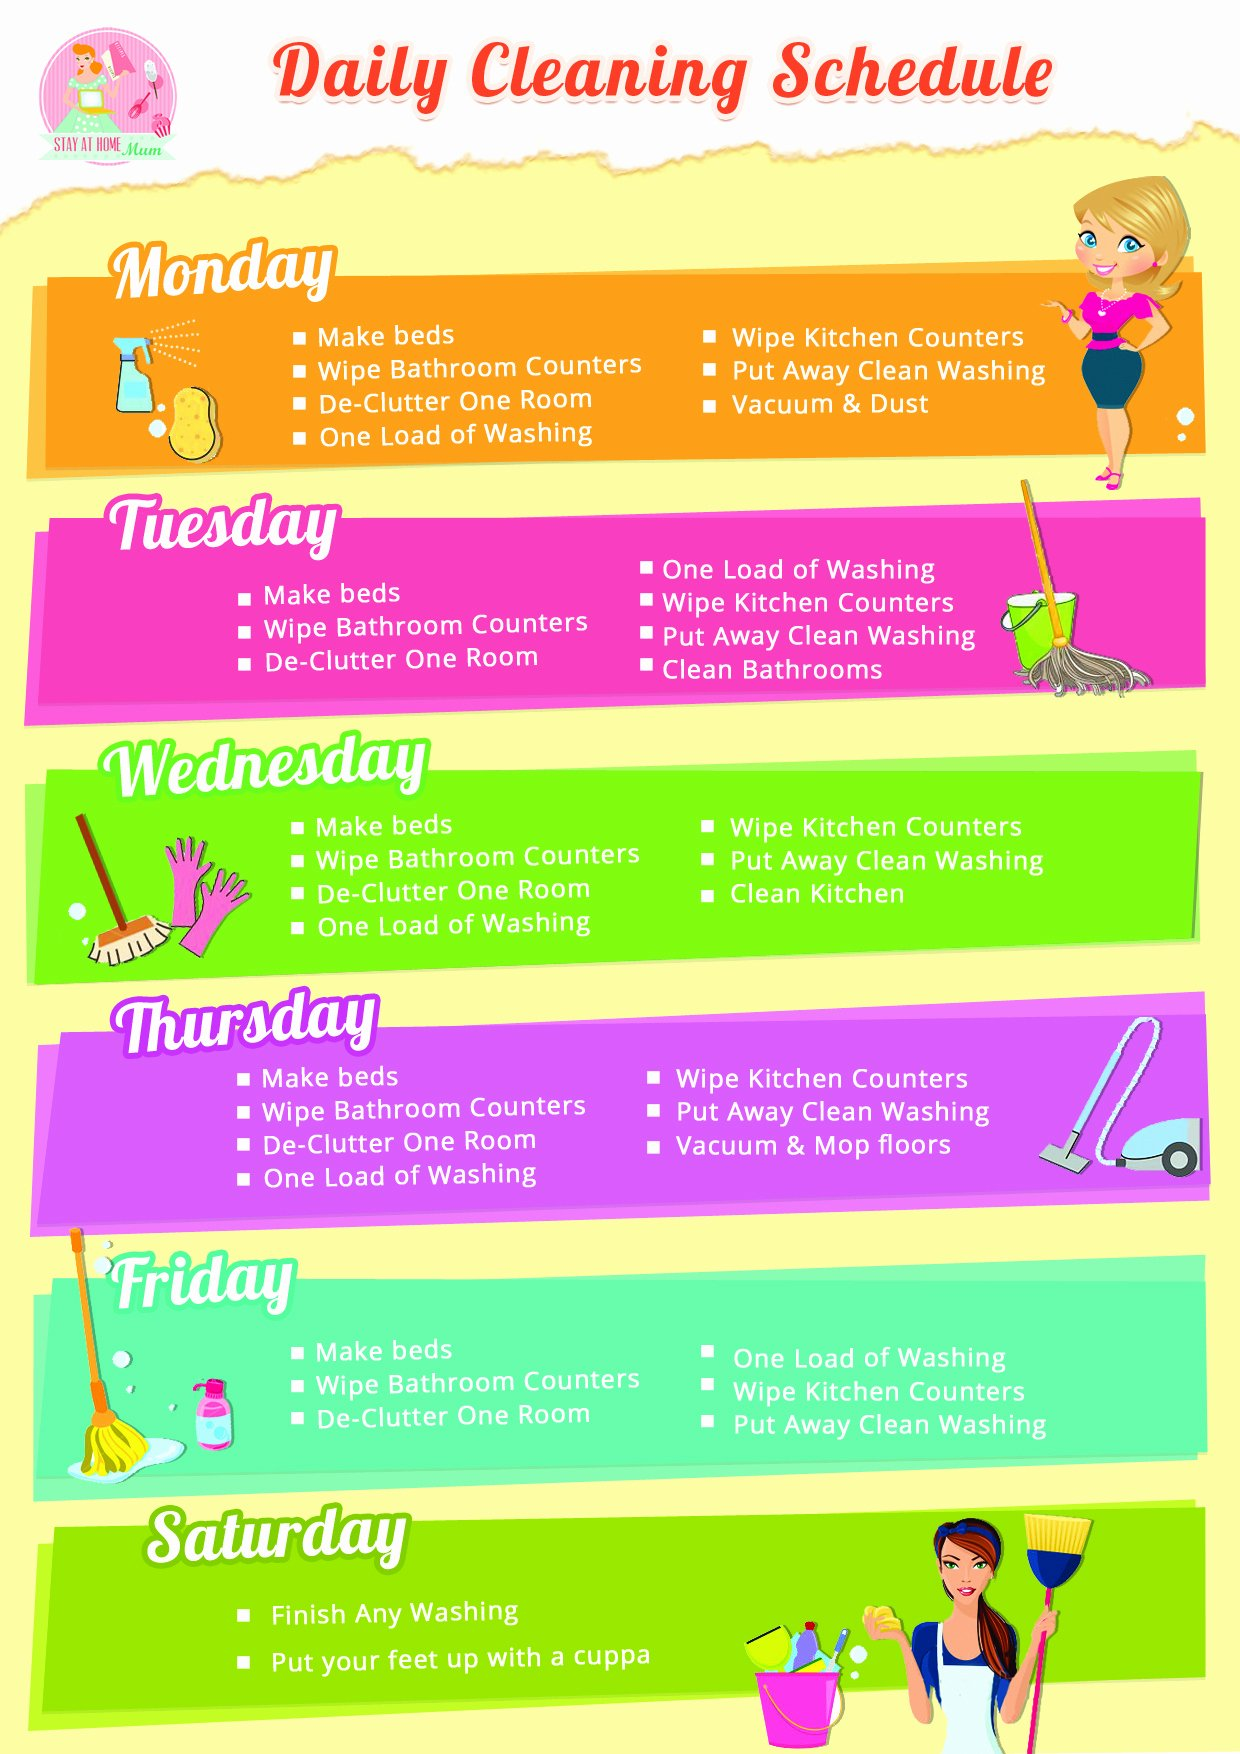 Weekly Cleaning Schedule Template Lovely Daily Home Cleaning Schedule